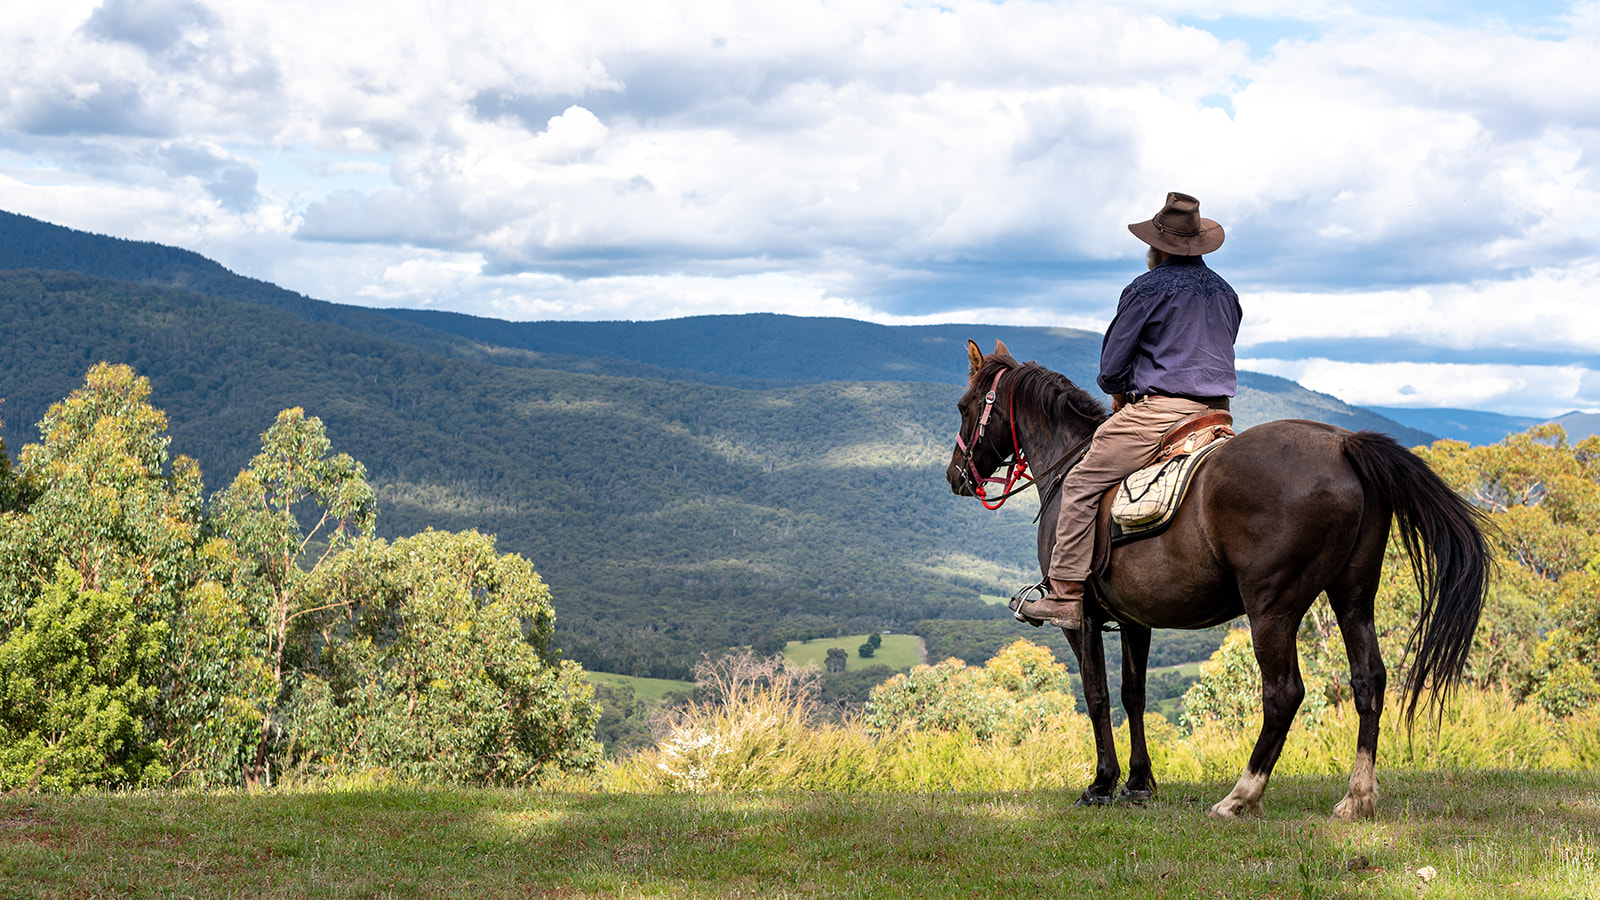 Globetrotting Guide Horse: Fudge - Yarra Valley Ride, Victoria, Australia - Globetrotting horse riding holidays